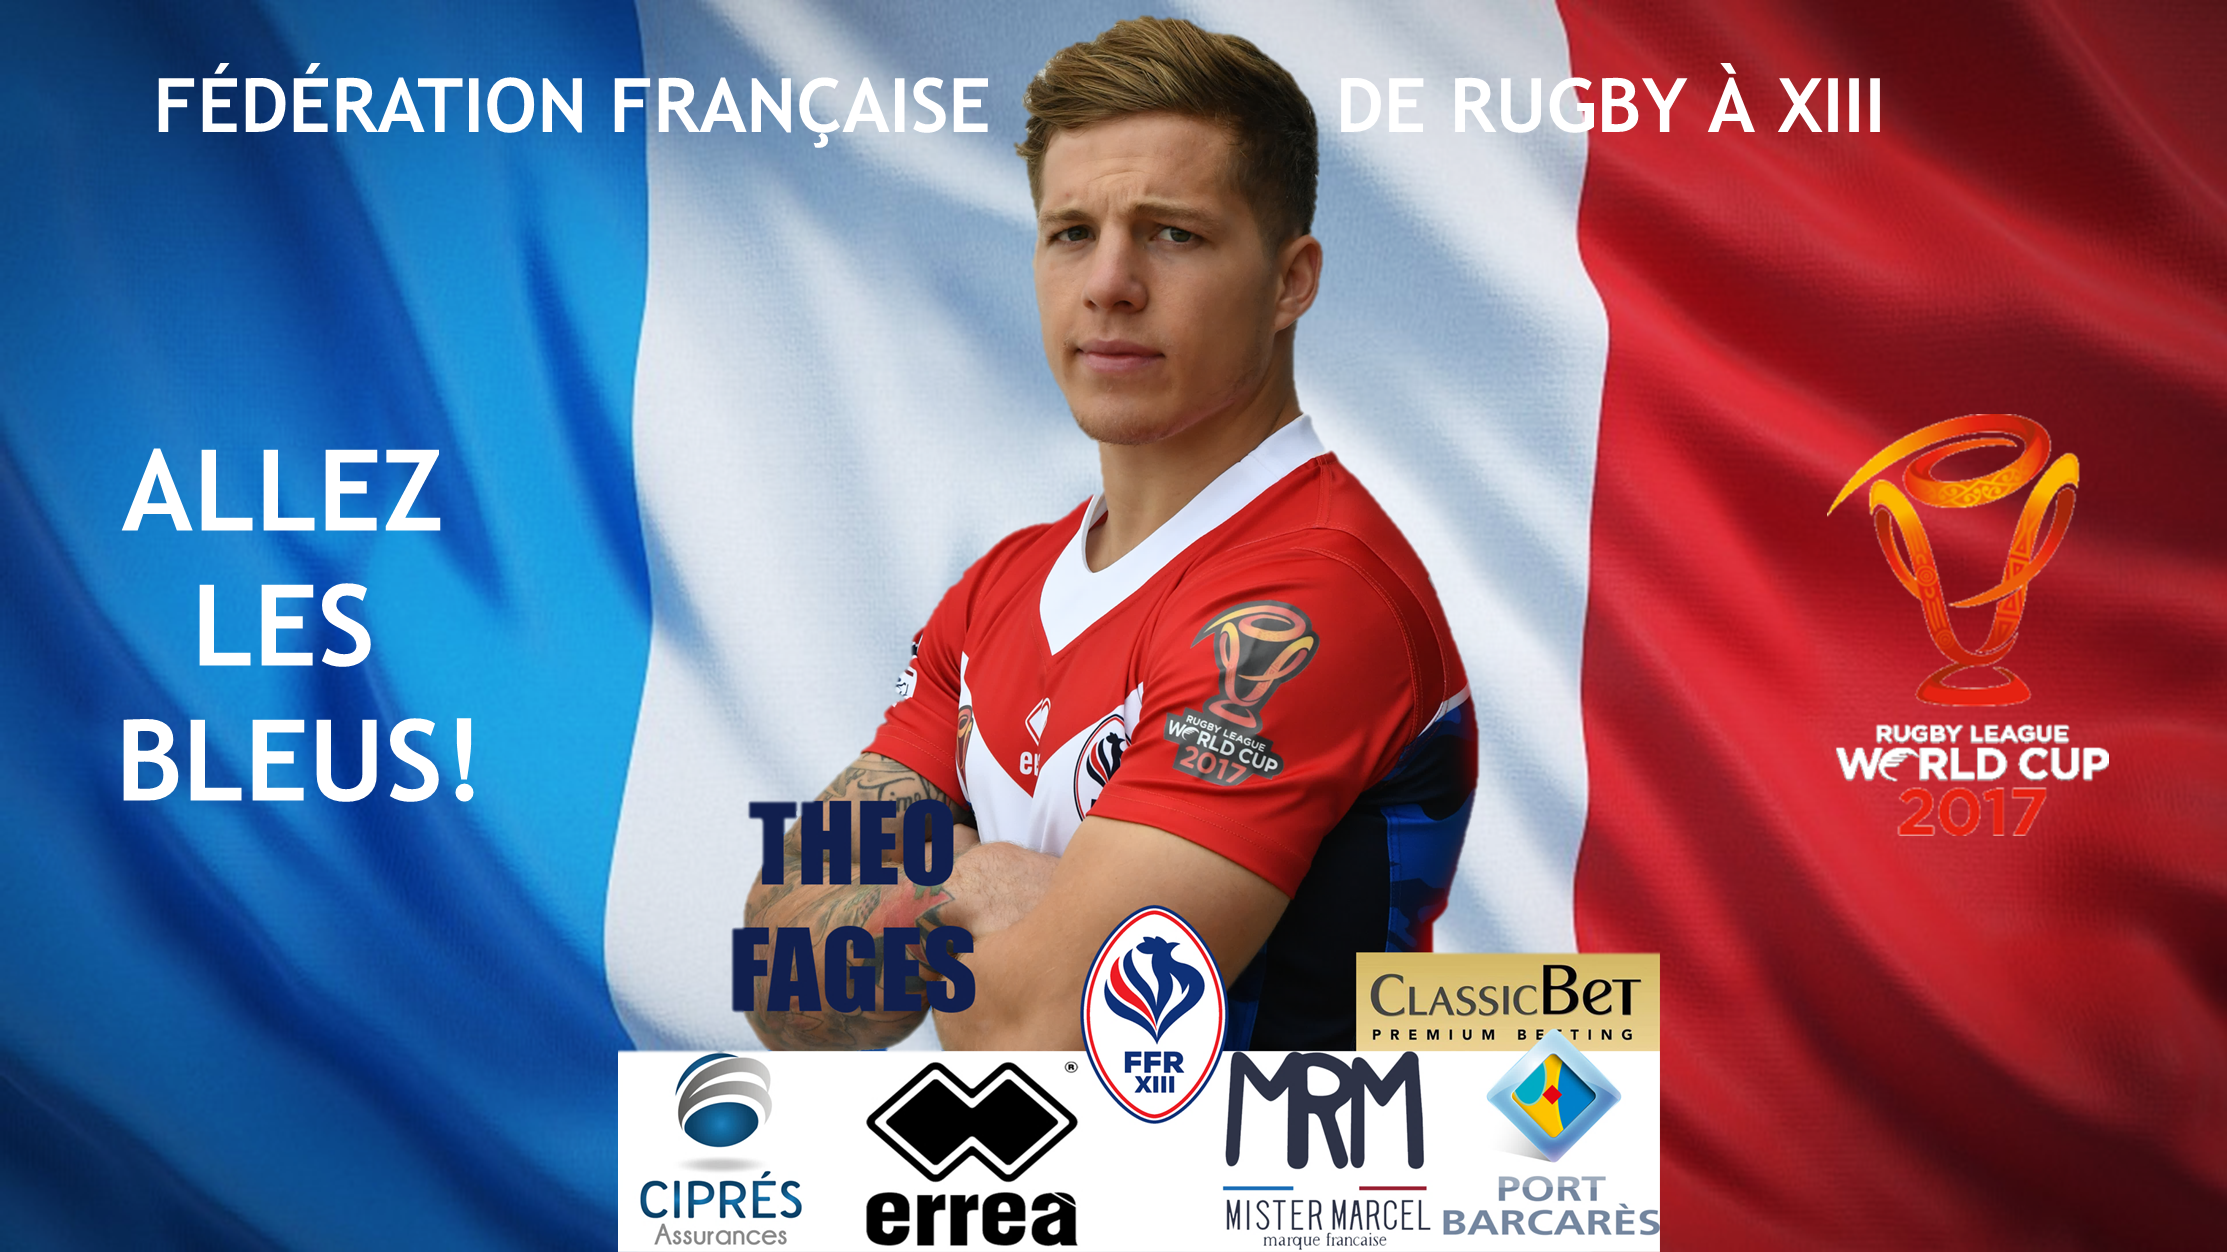 Théo Fages